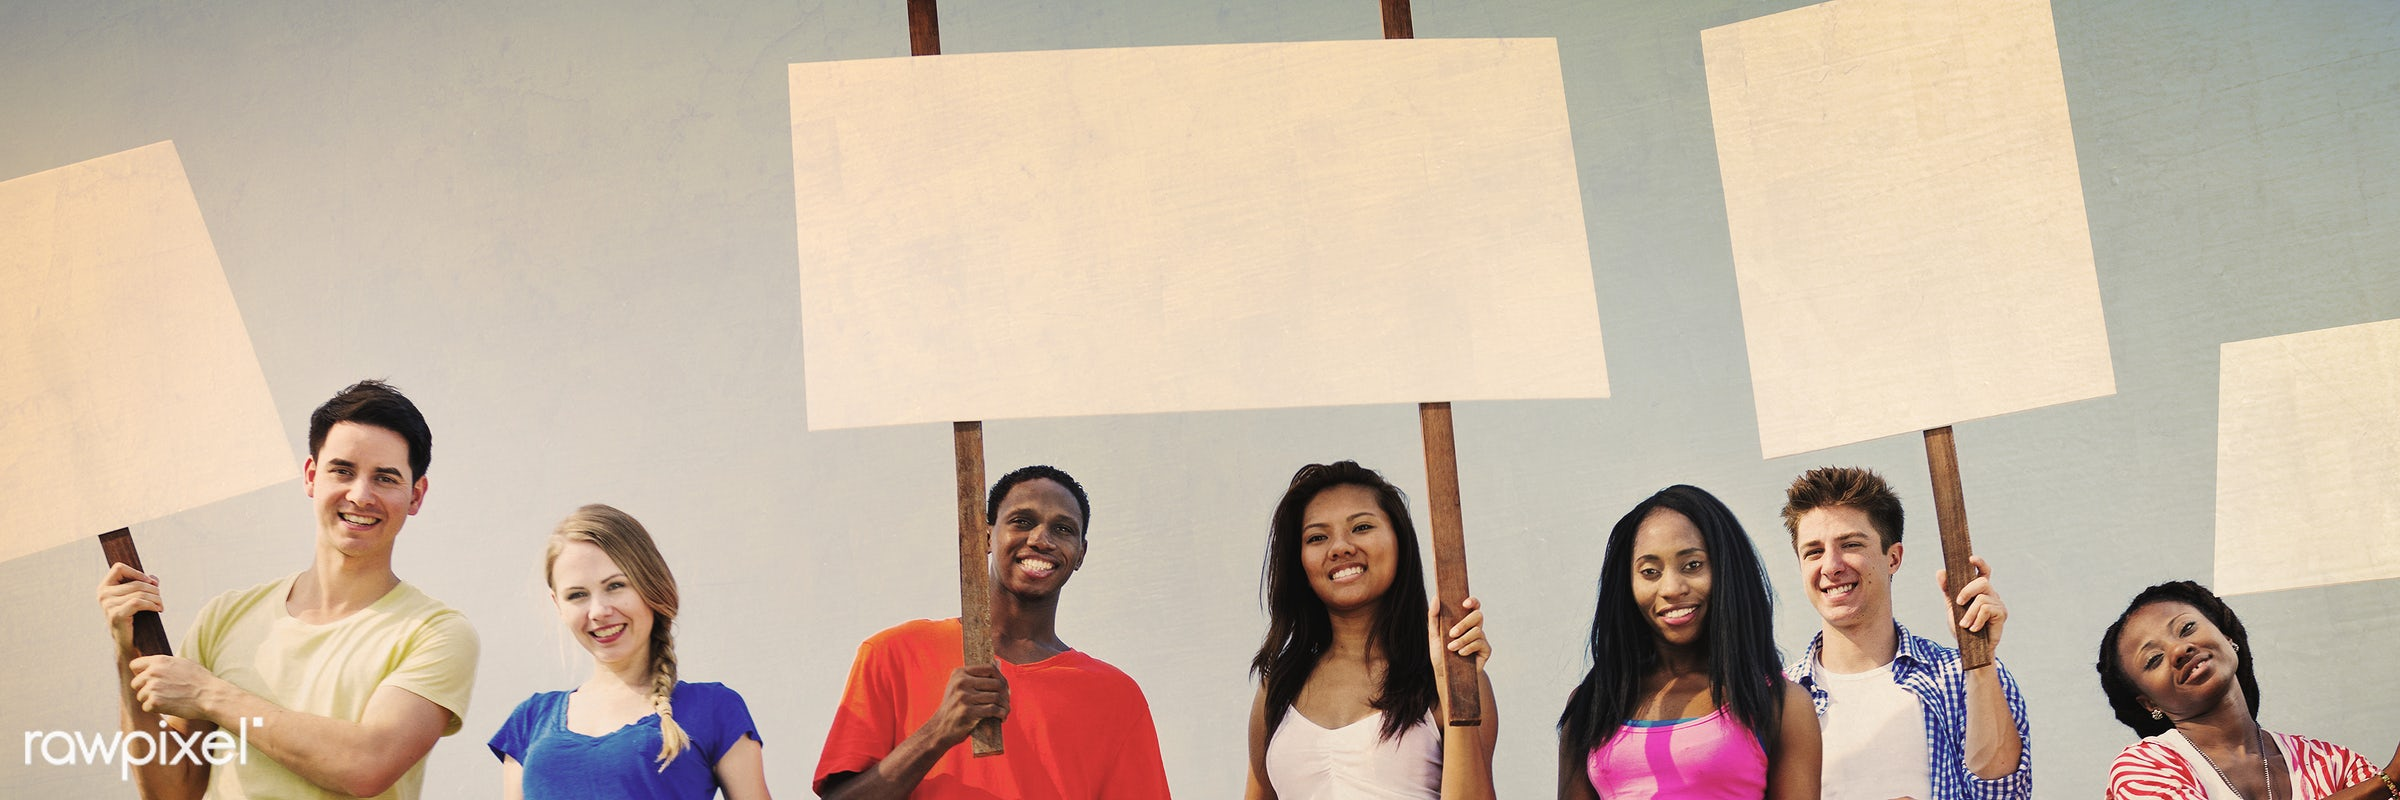 african descent, asian ethnicity, blank, blue sky, casual, cheerful, cheering, colorful, community, concept, cooperation,...